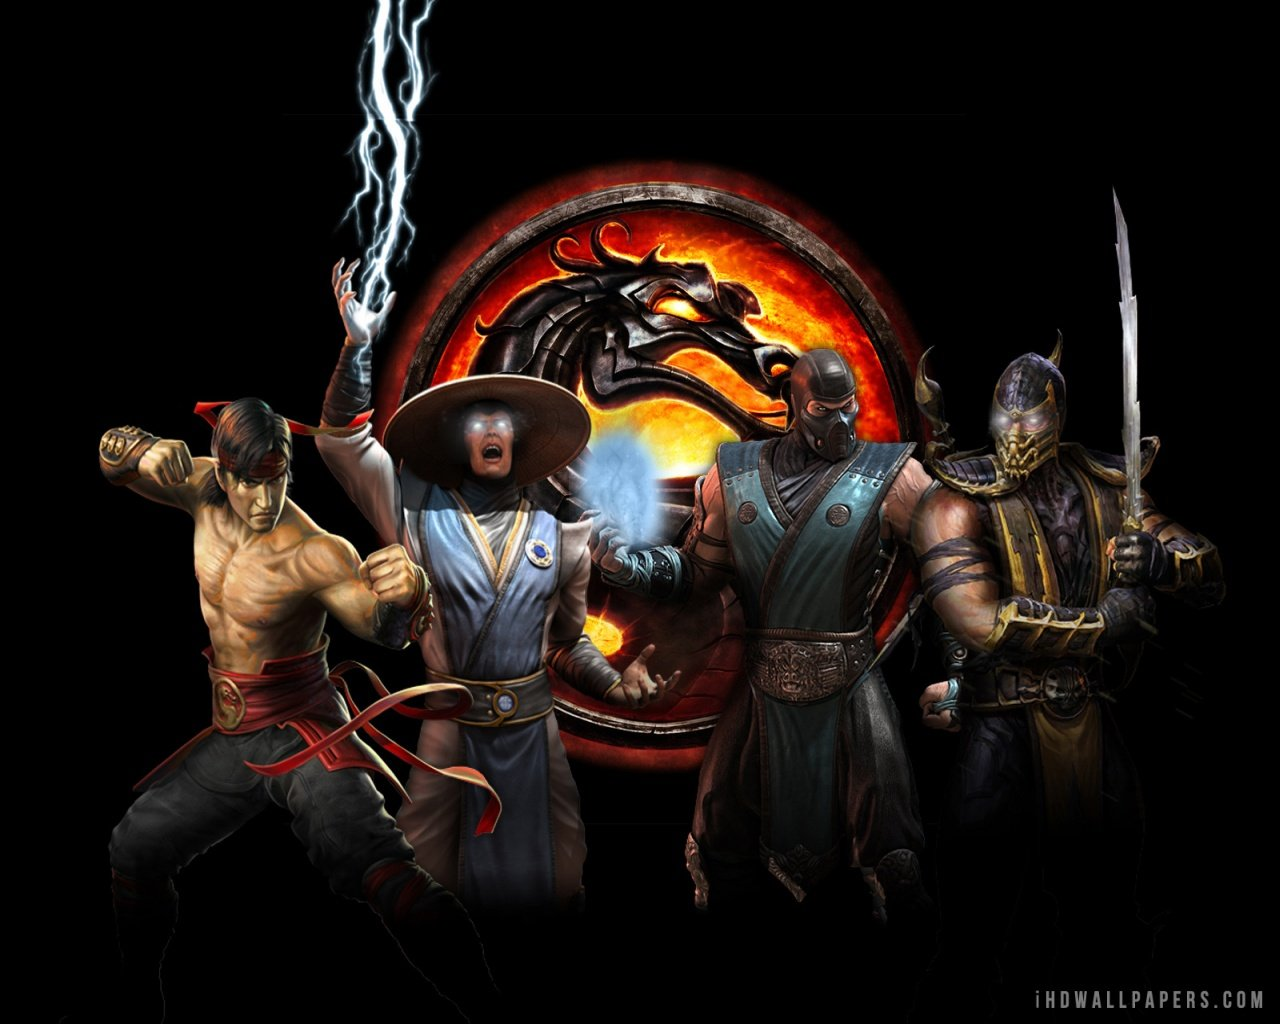 Free download Mortal Kombat 9 Characters [1280x1024] for